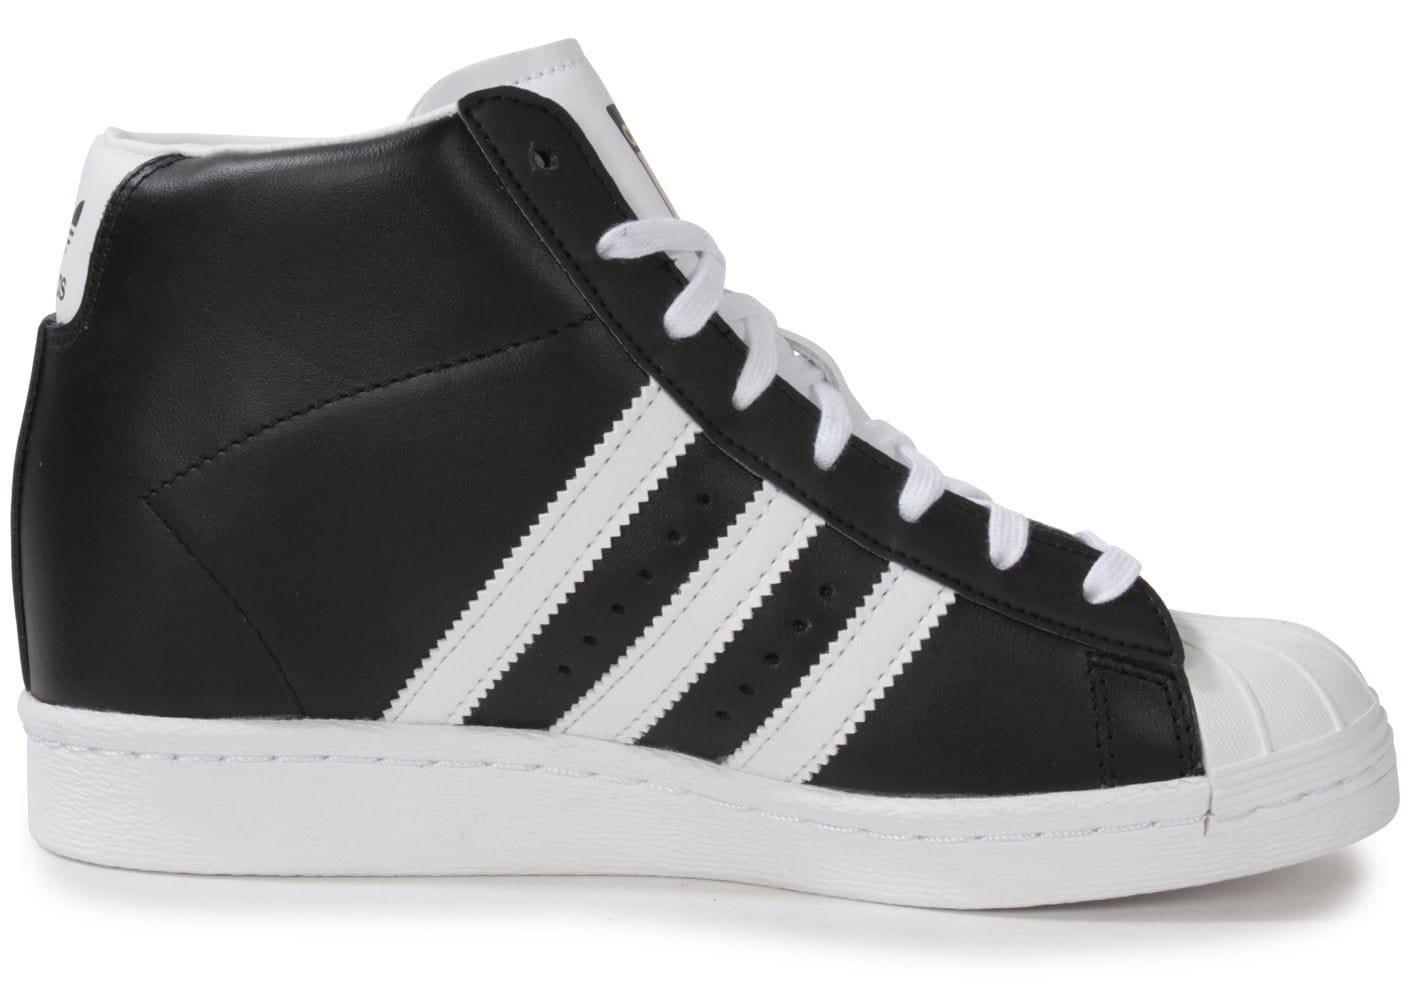 ... Chaussures adidas Superstar Up Compensee Noire vue dessous ...